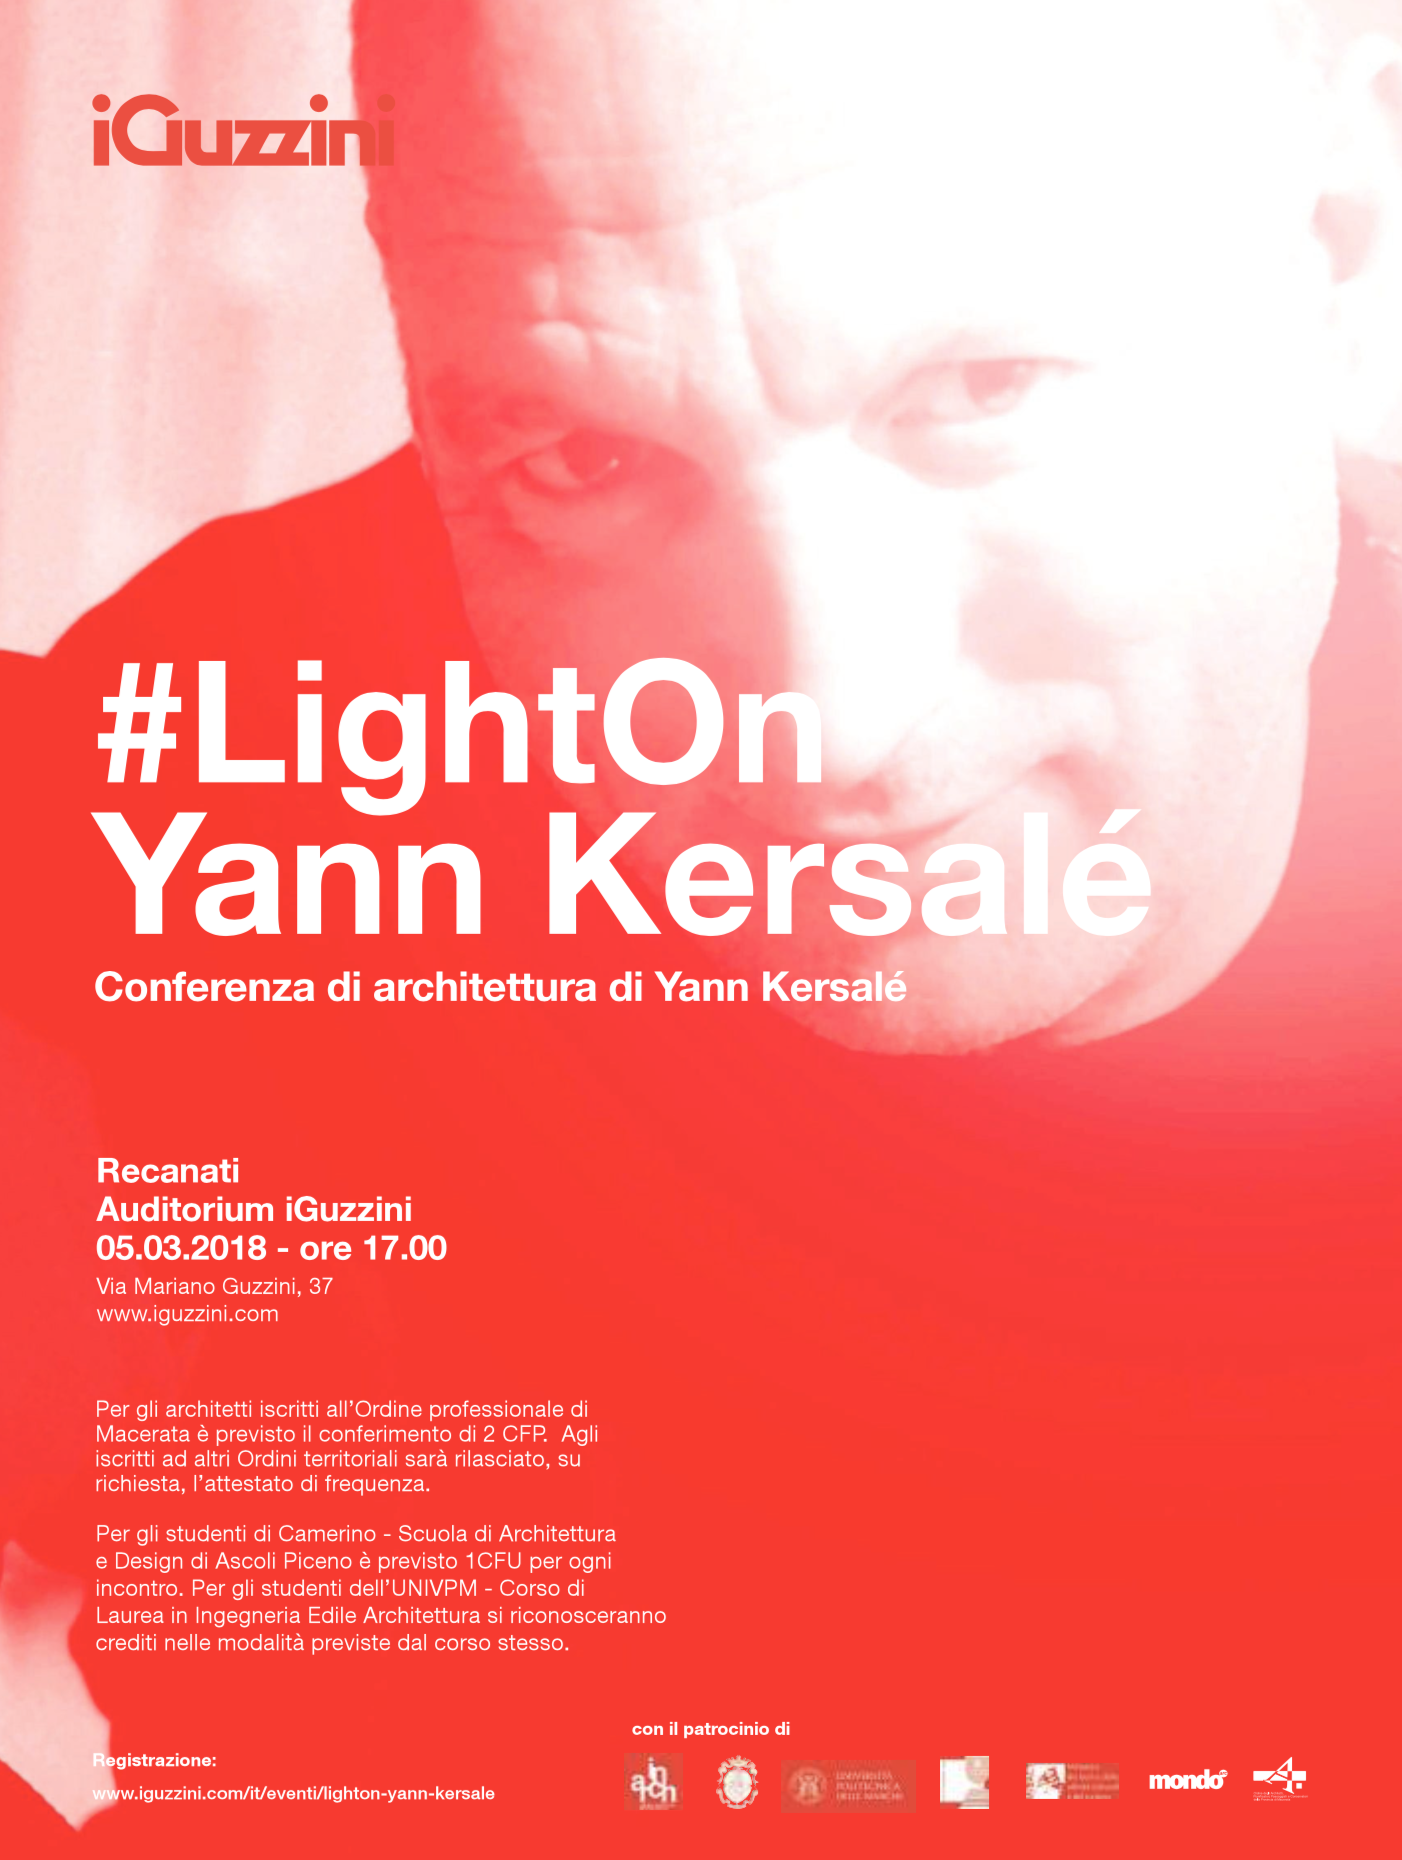 #LightOn Yann Kersalé